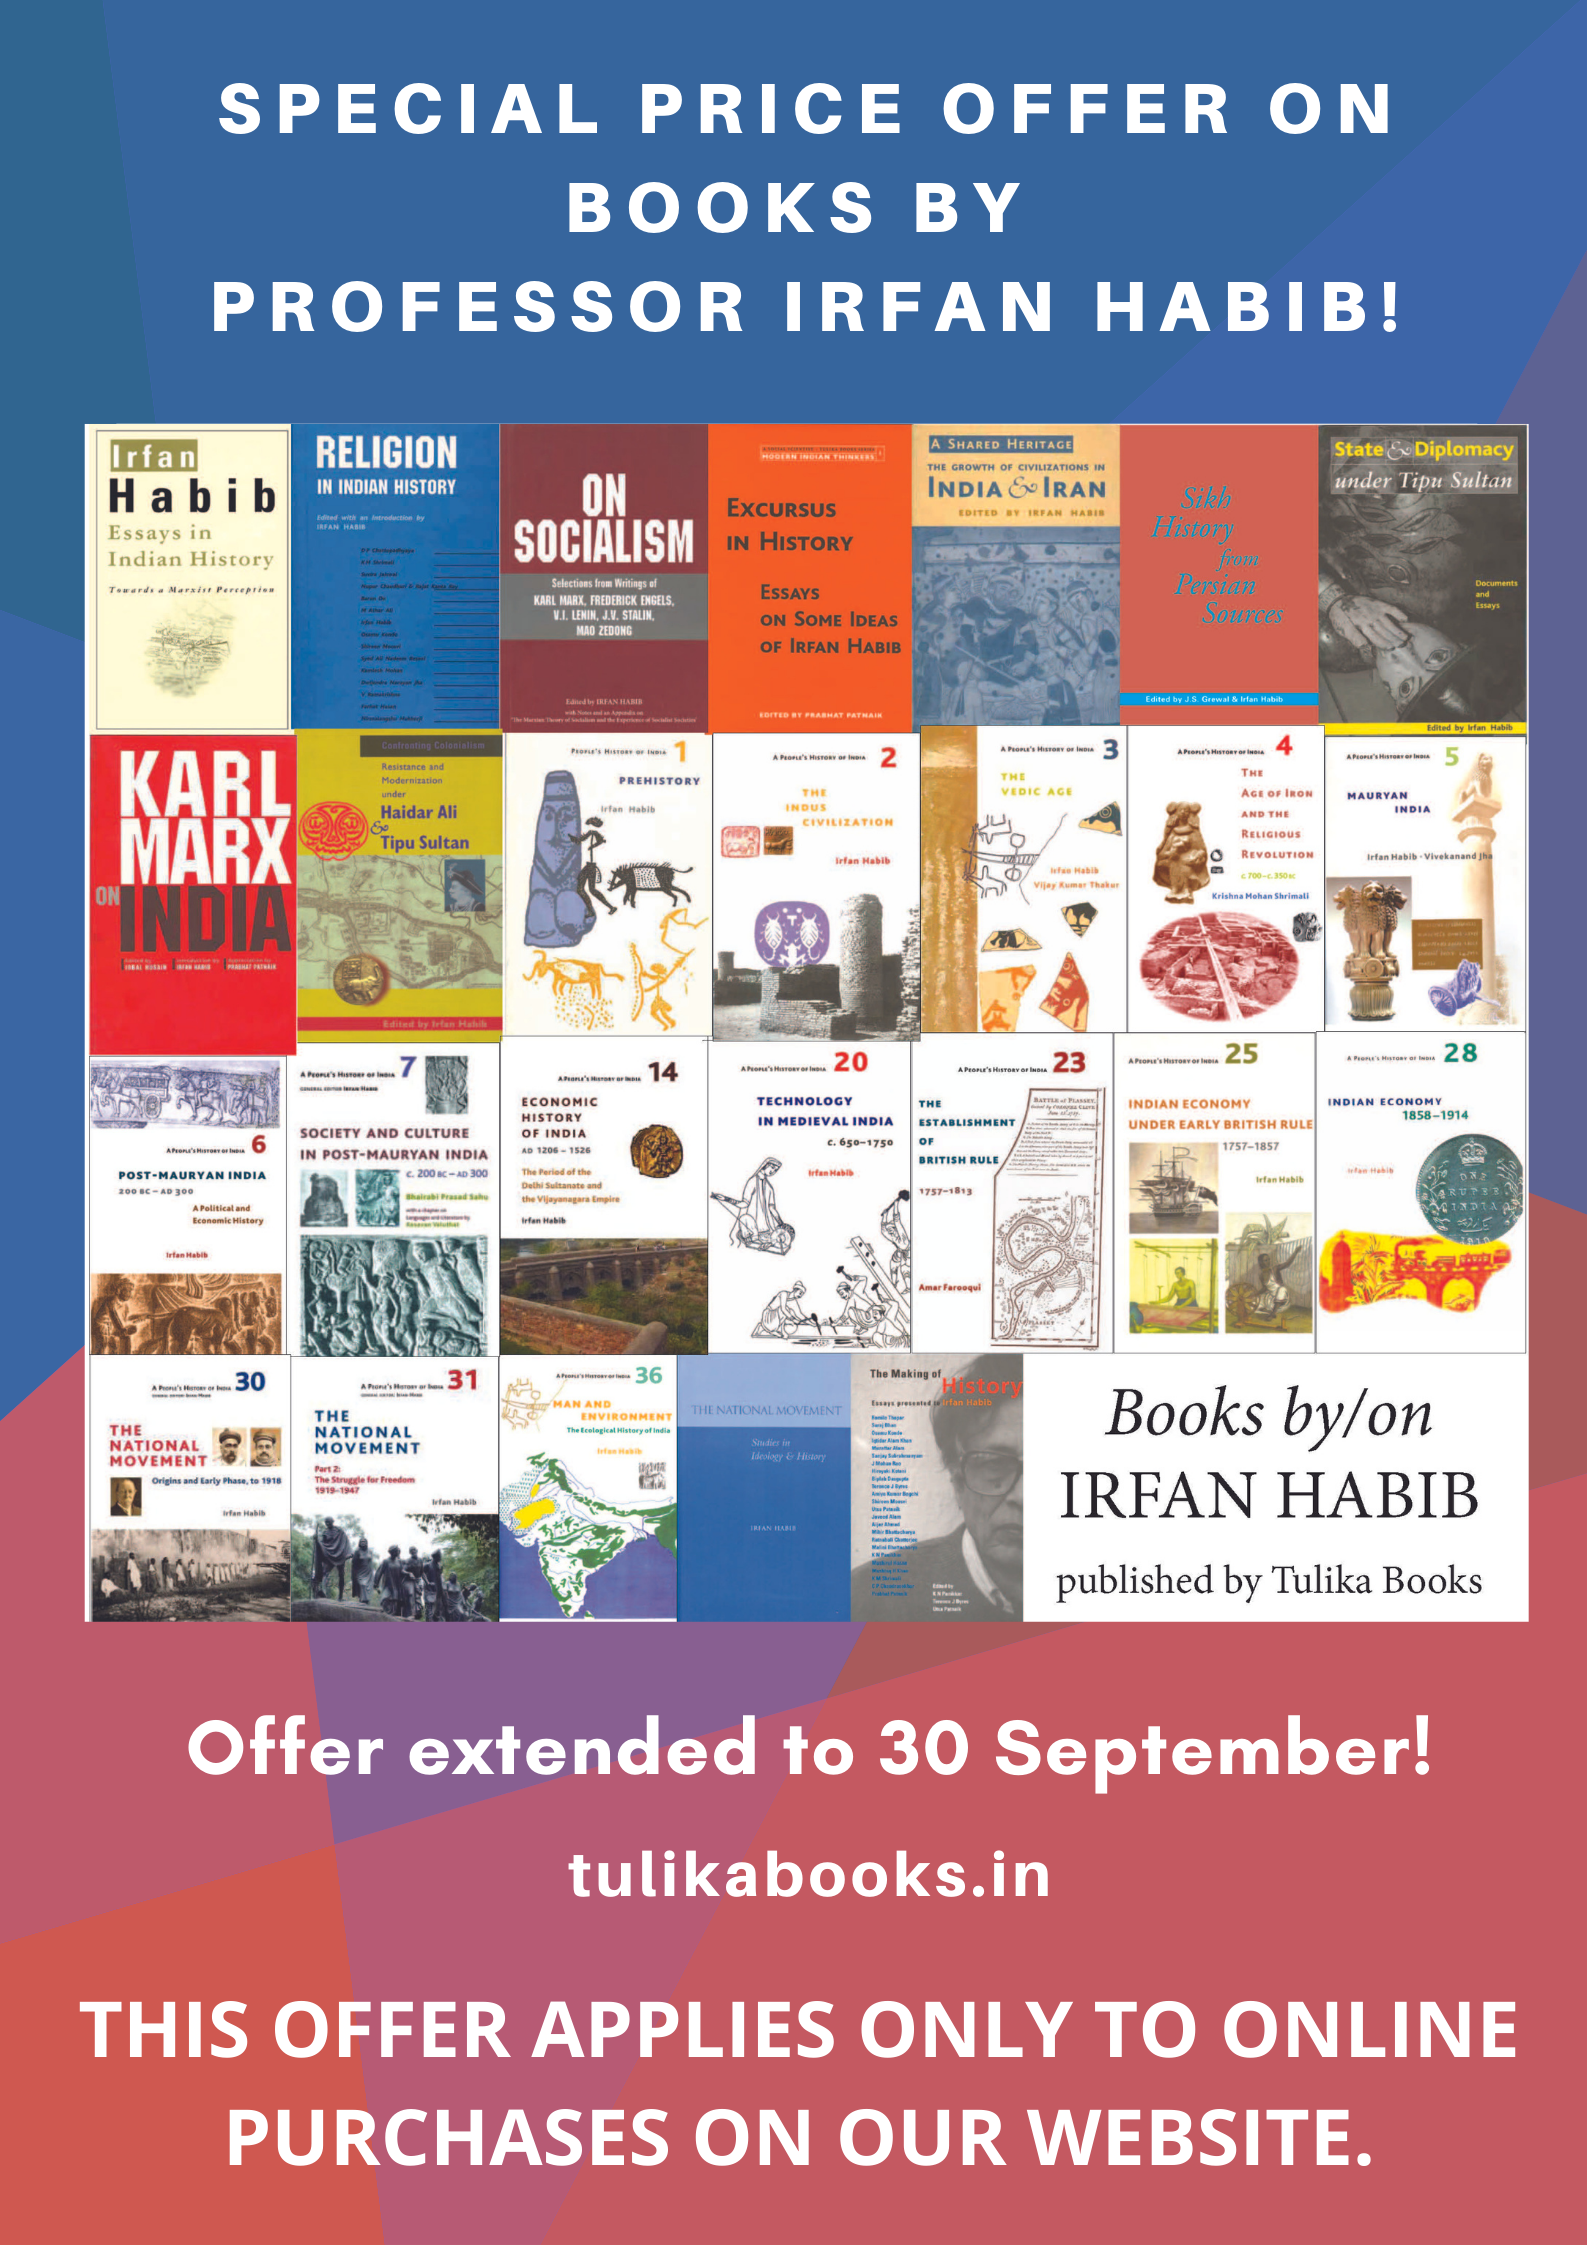 Special price offer on books by Irfan Habib